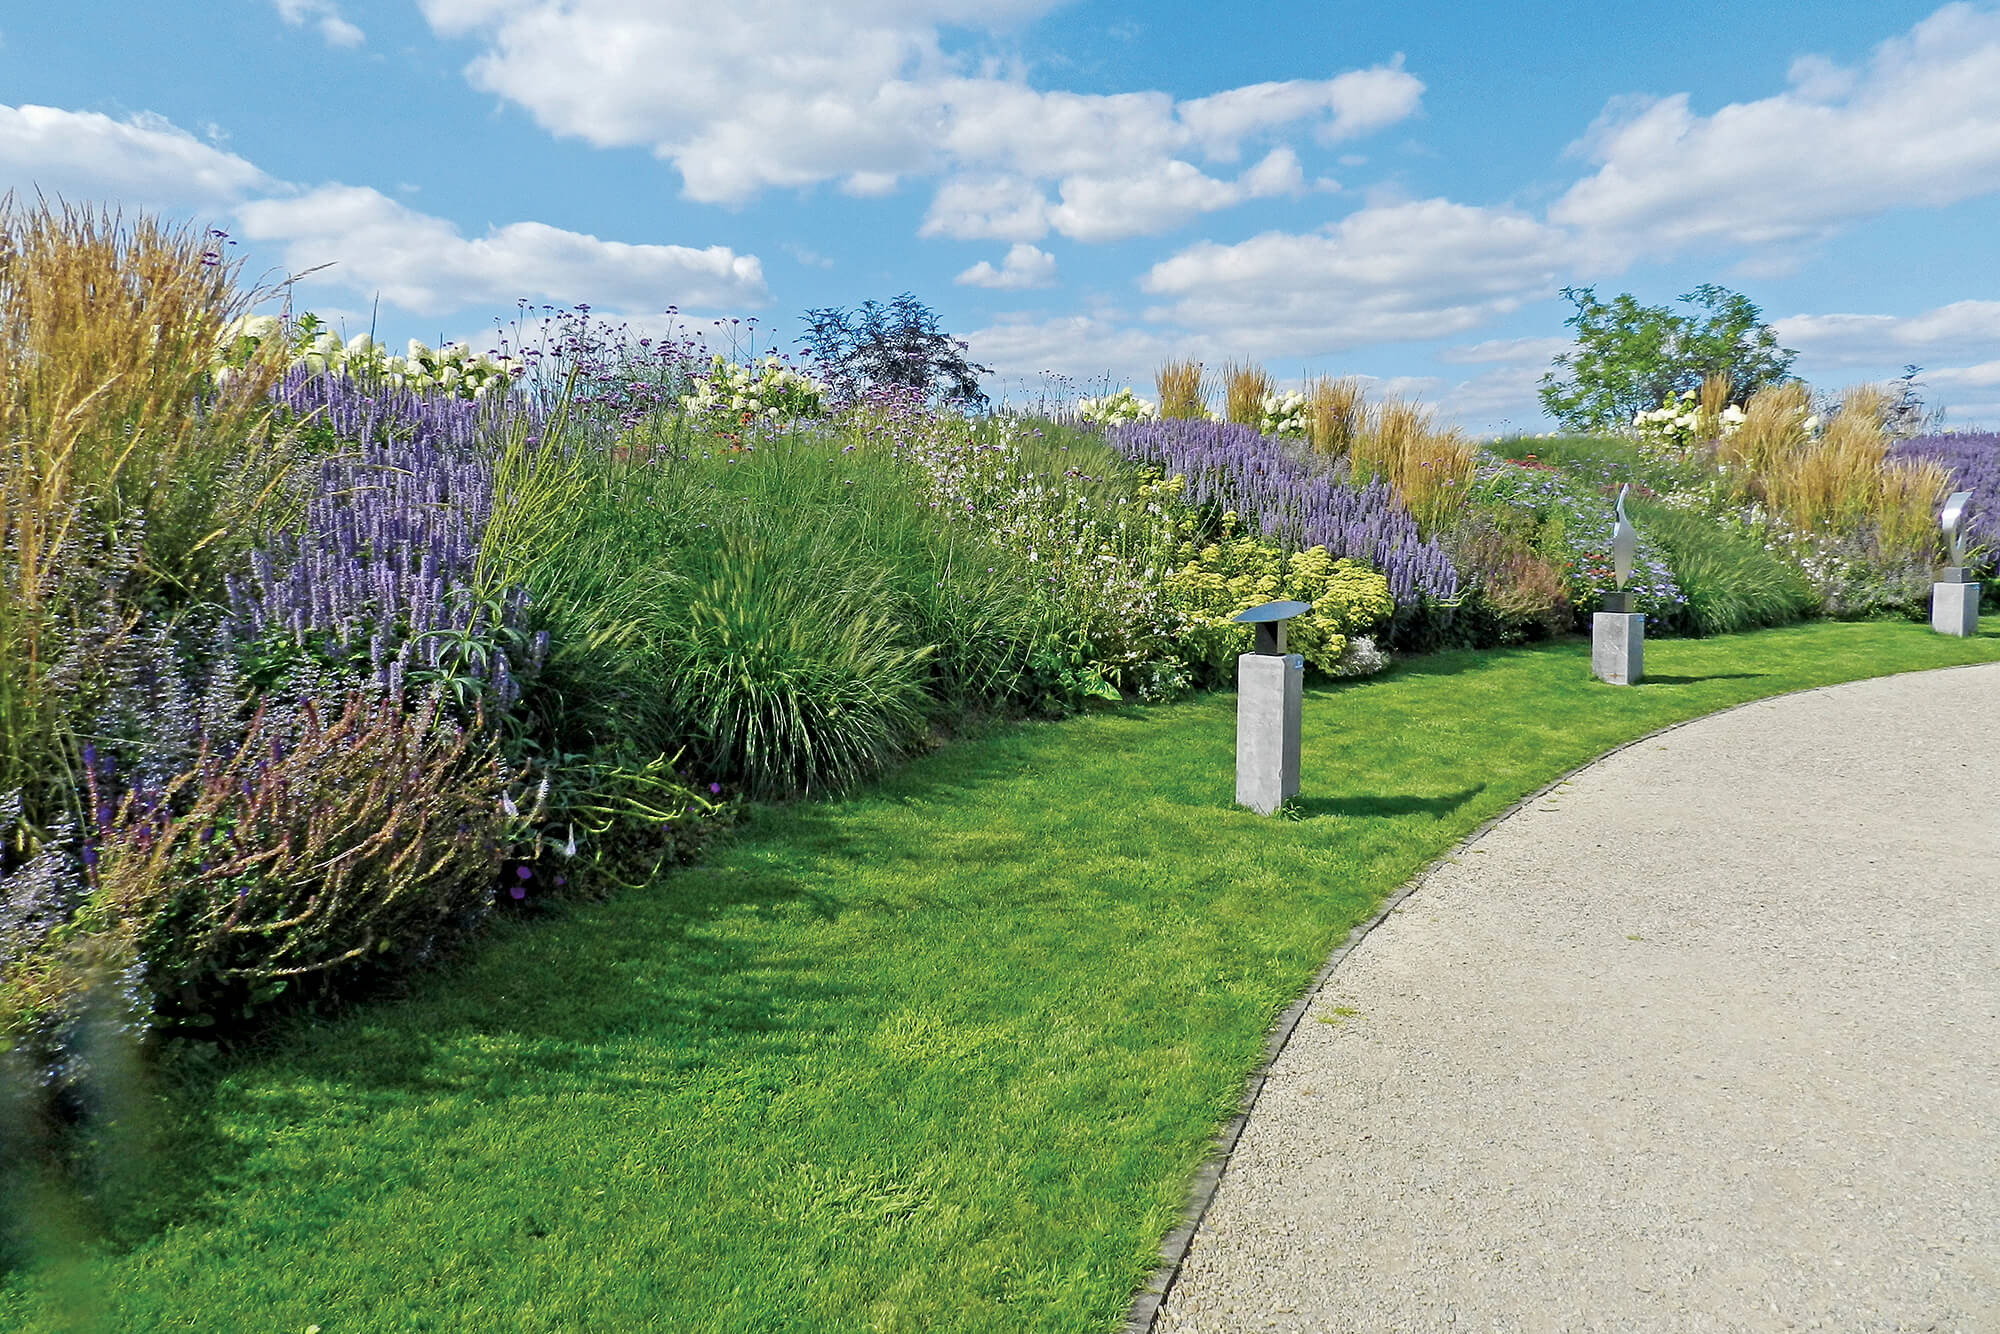 A nice display of various perennials next to a path